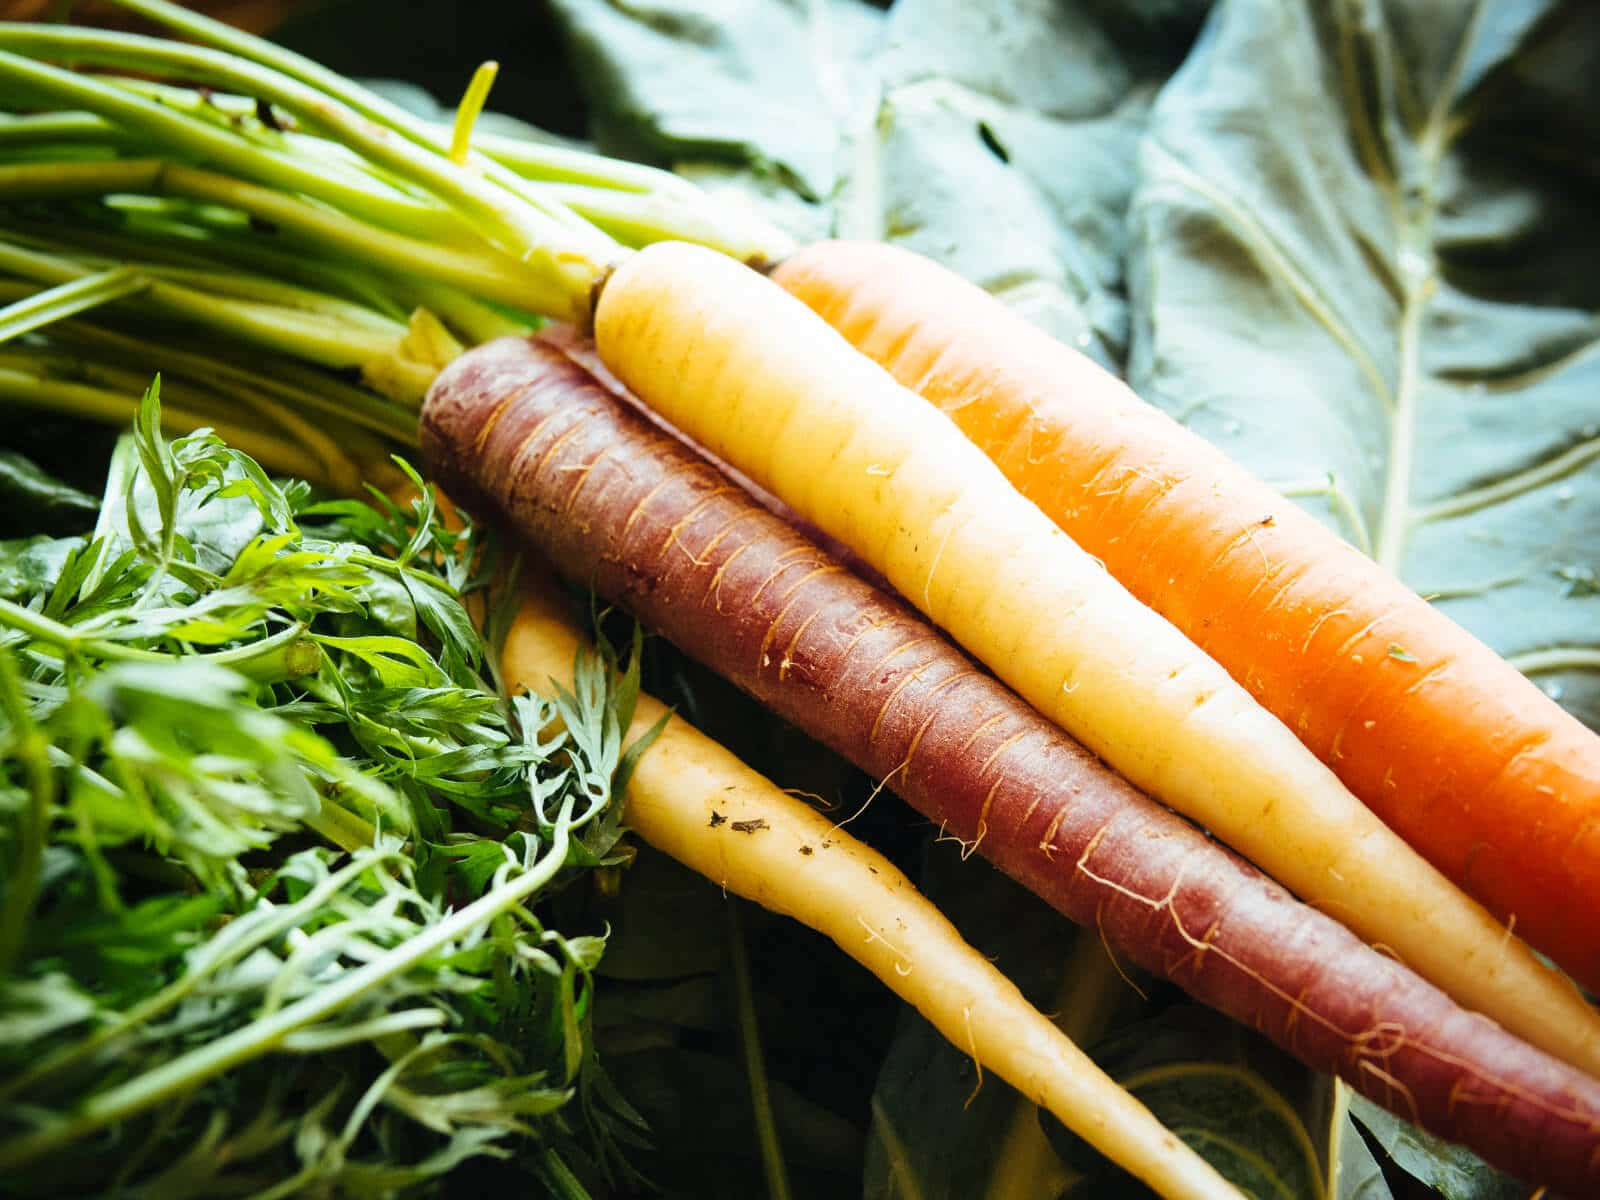 Carrots and carrot leaves are edible